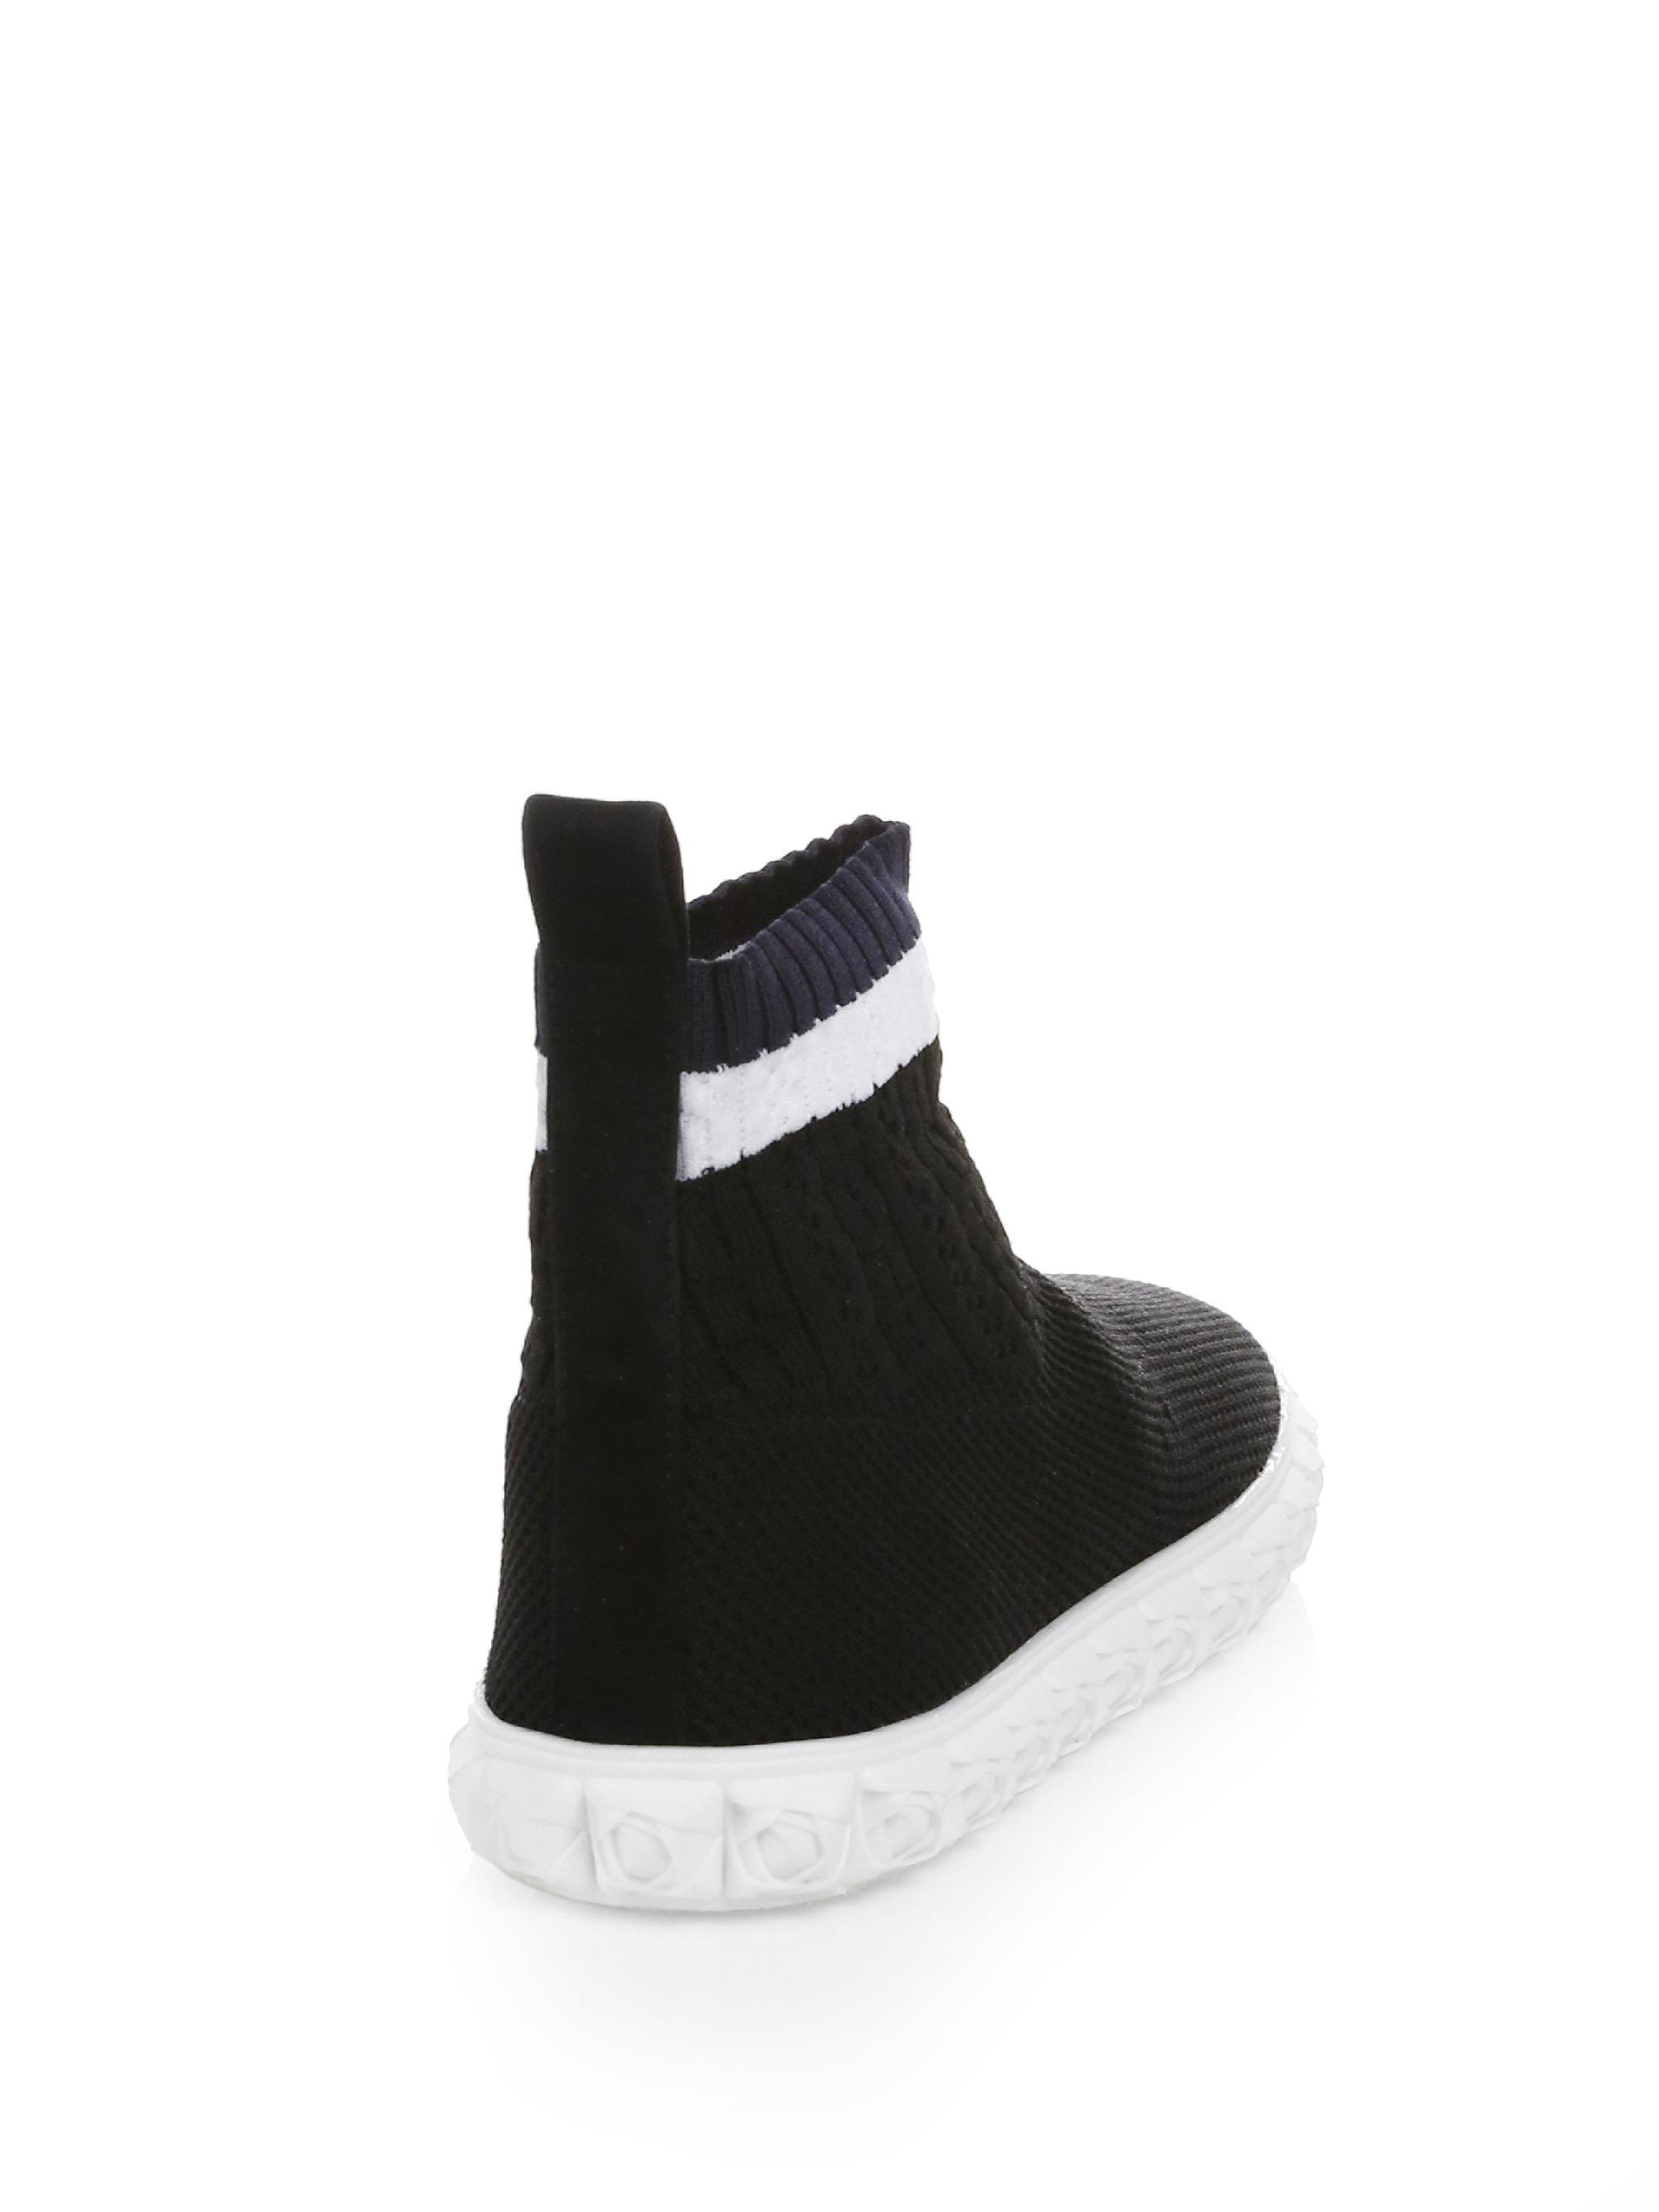 Stuart Weitzman Coverall High-Top Sock Sneaker TCXKDT29fs